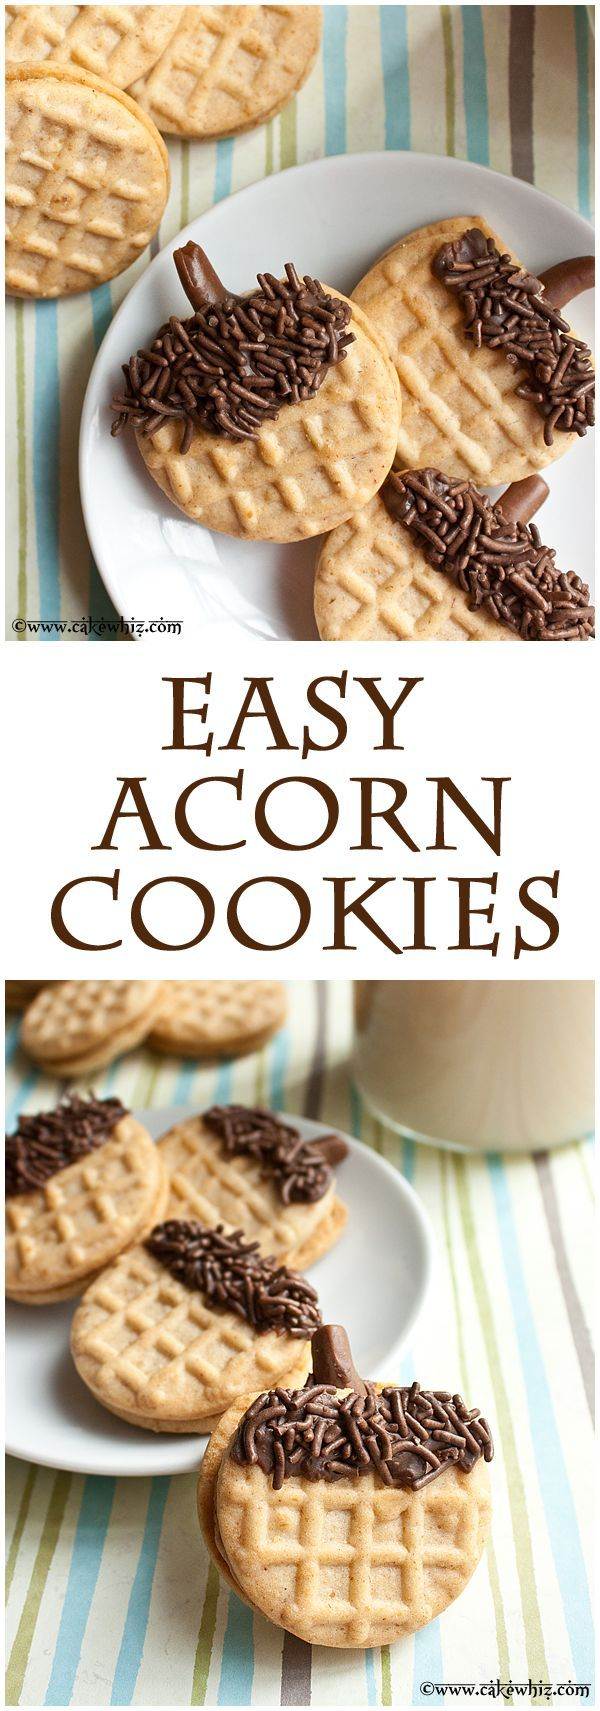 Easiest ACORN COOKIES ever. Kids can make these on Thanksgiving while you are busy with the turkey ;) From cakewhiz.com